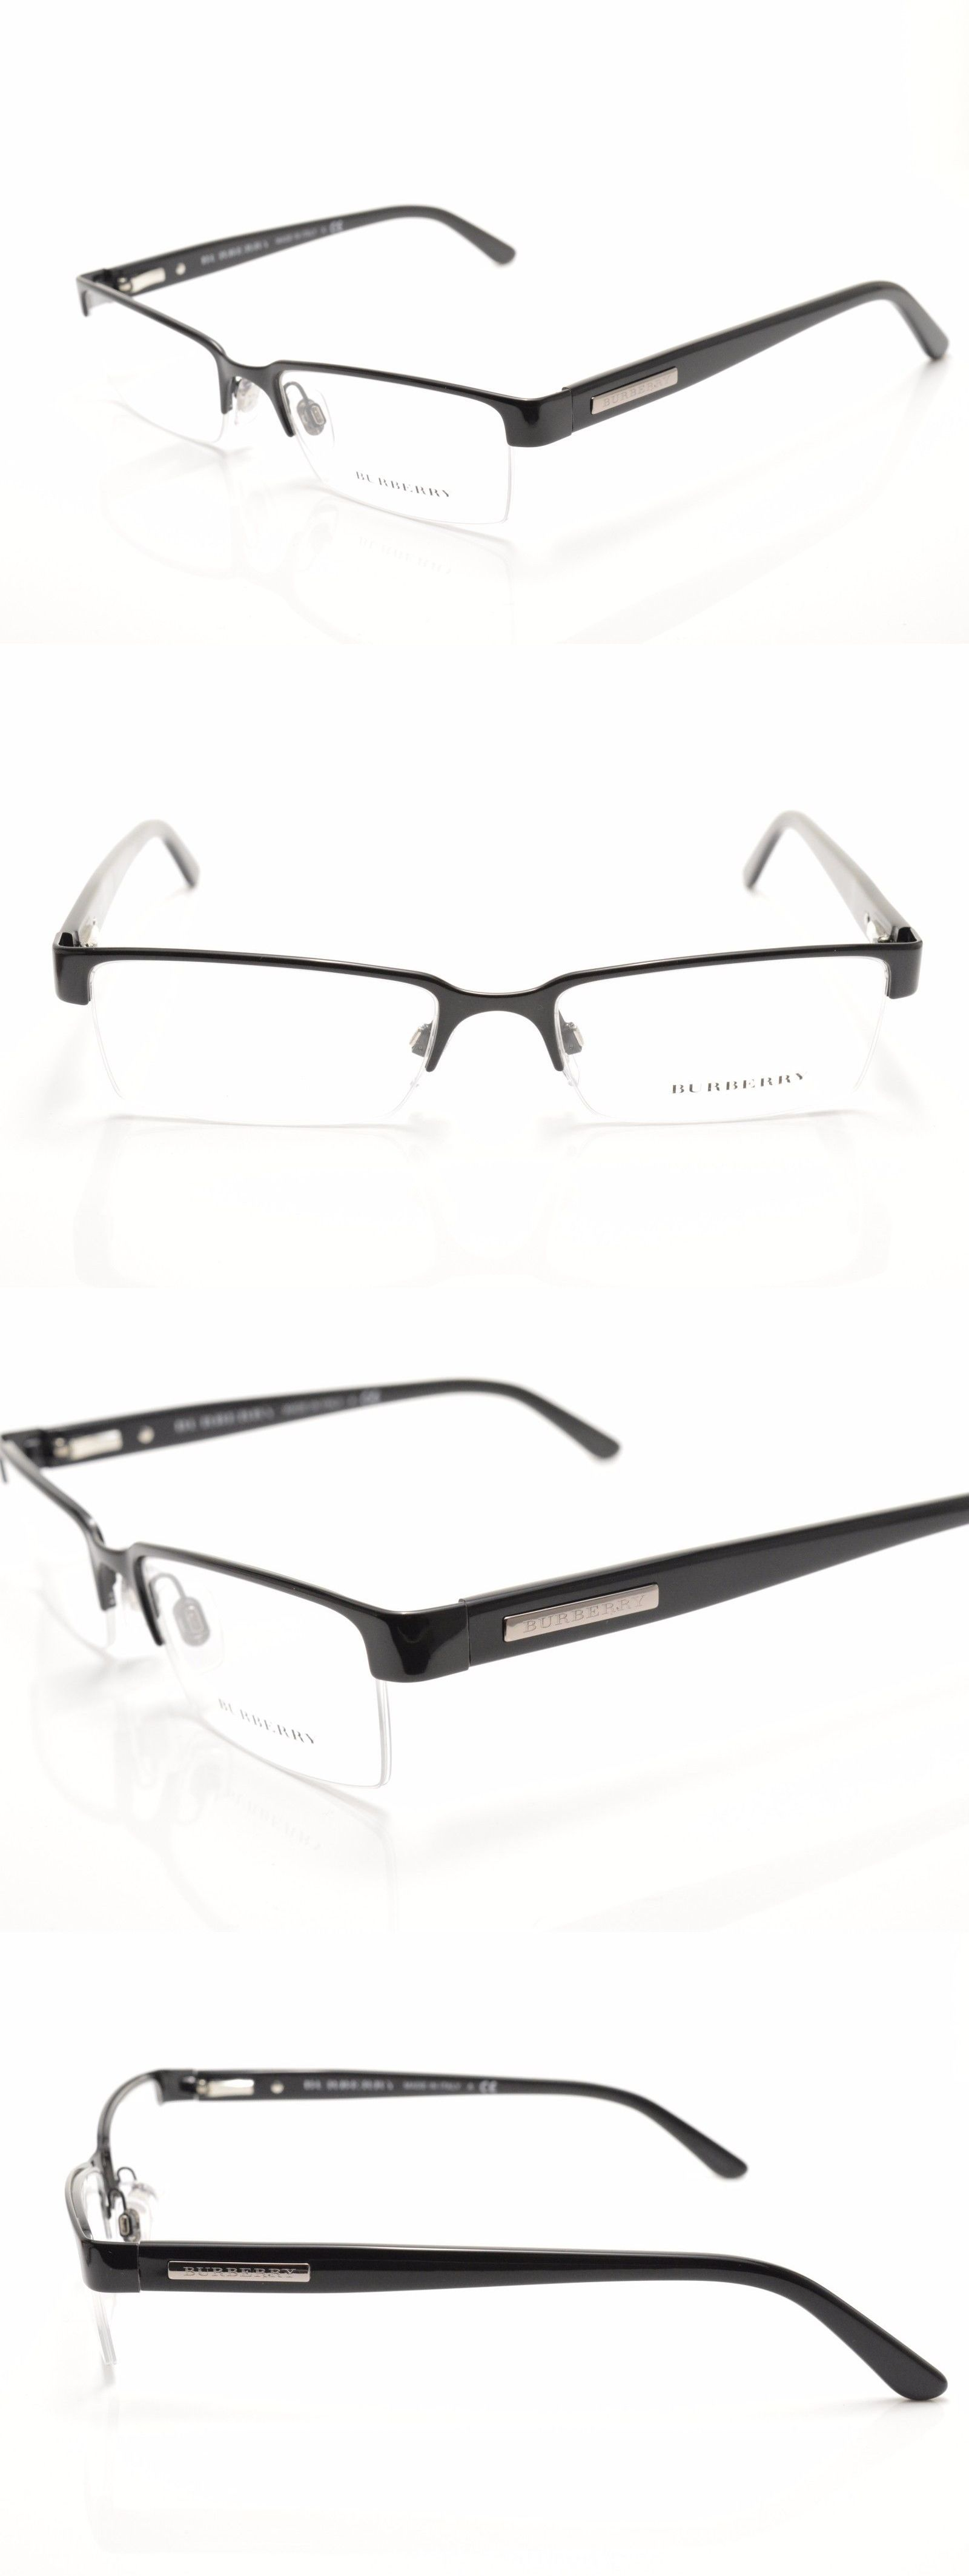 03b087057238 Eyeglass Frames: ?? B 1156 1001 New Authentic Burberry Rx Eyeglasses Frame  52-17-140 Italy BUY IT NOW ONLY: $69.99